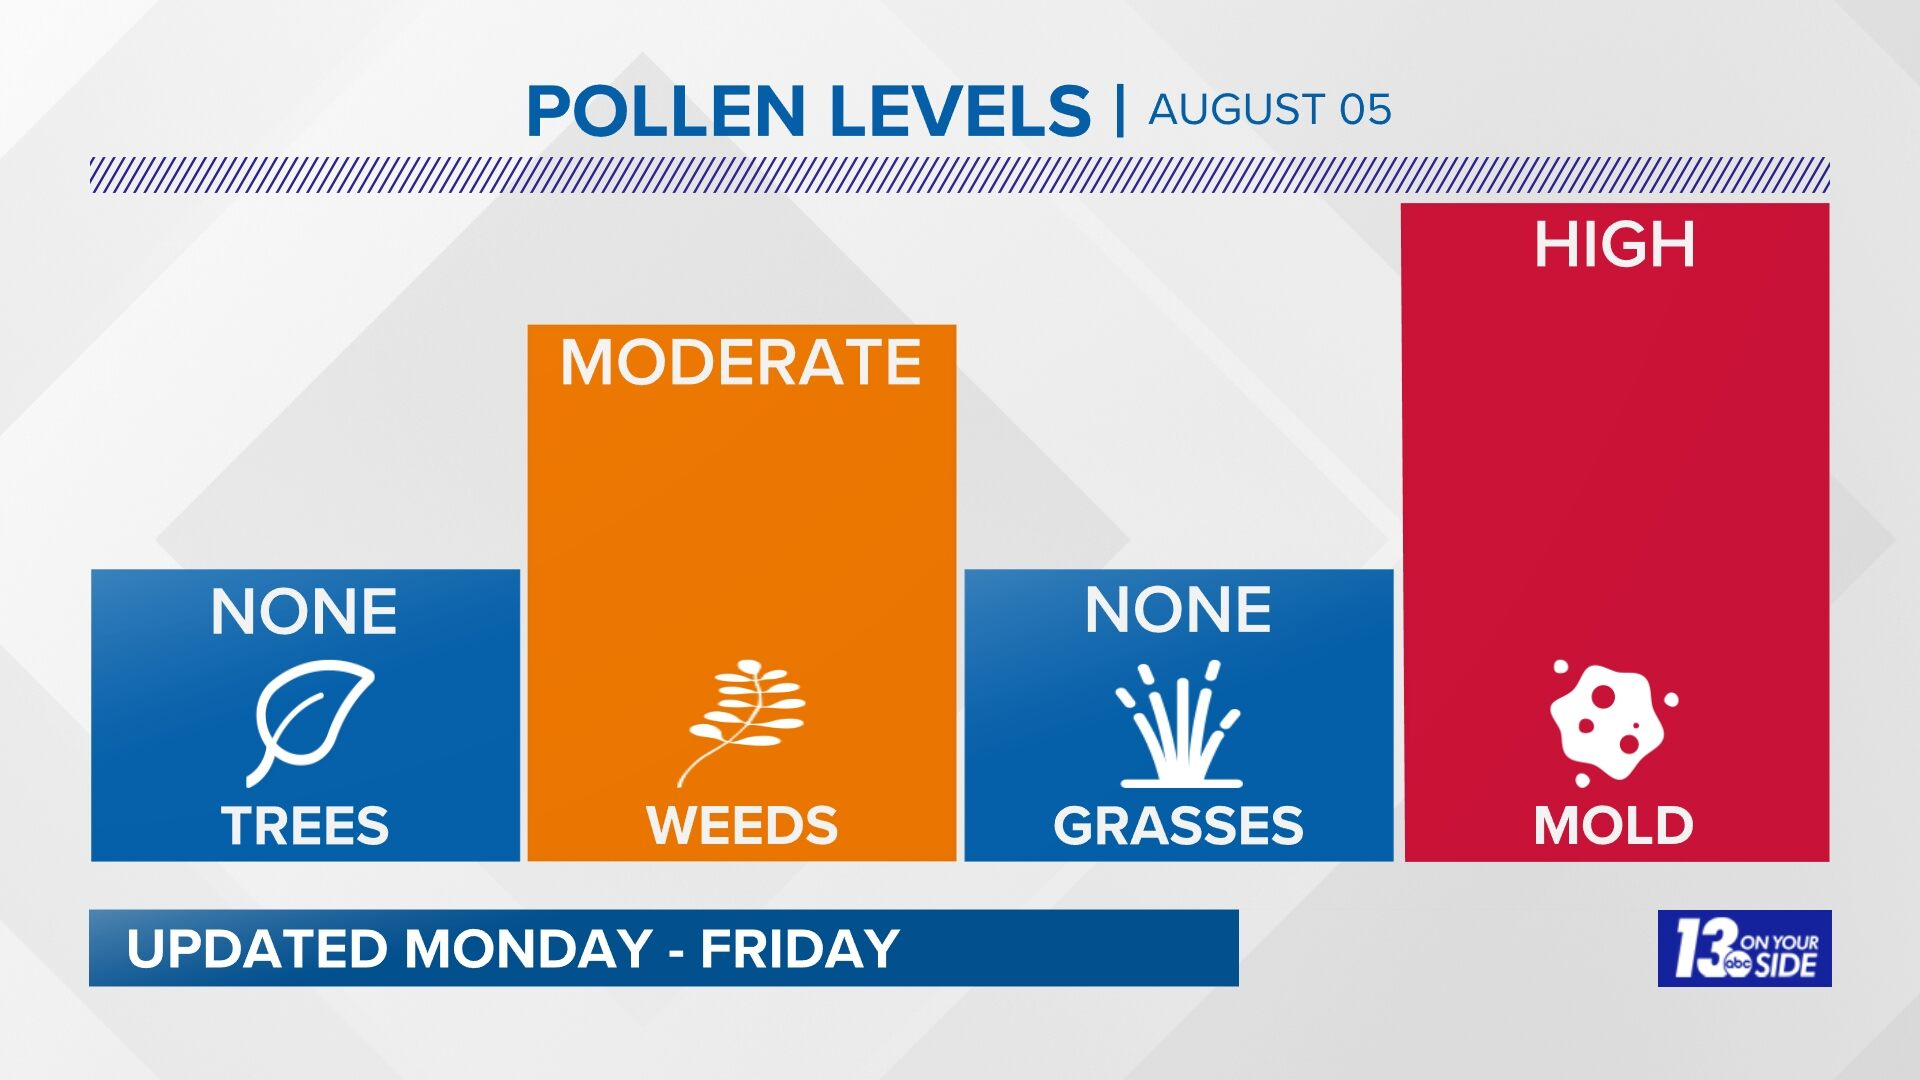 Holland Pollen Count